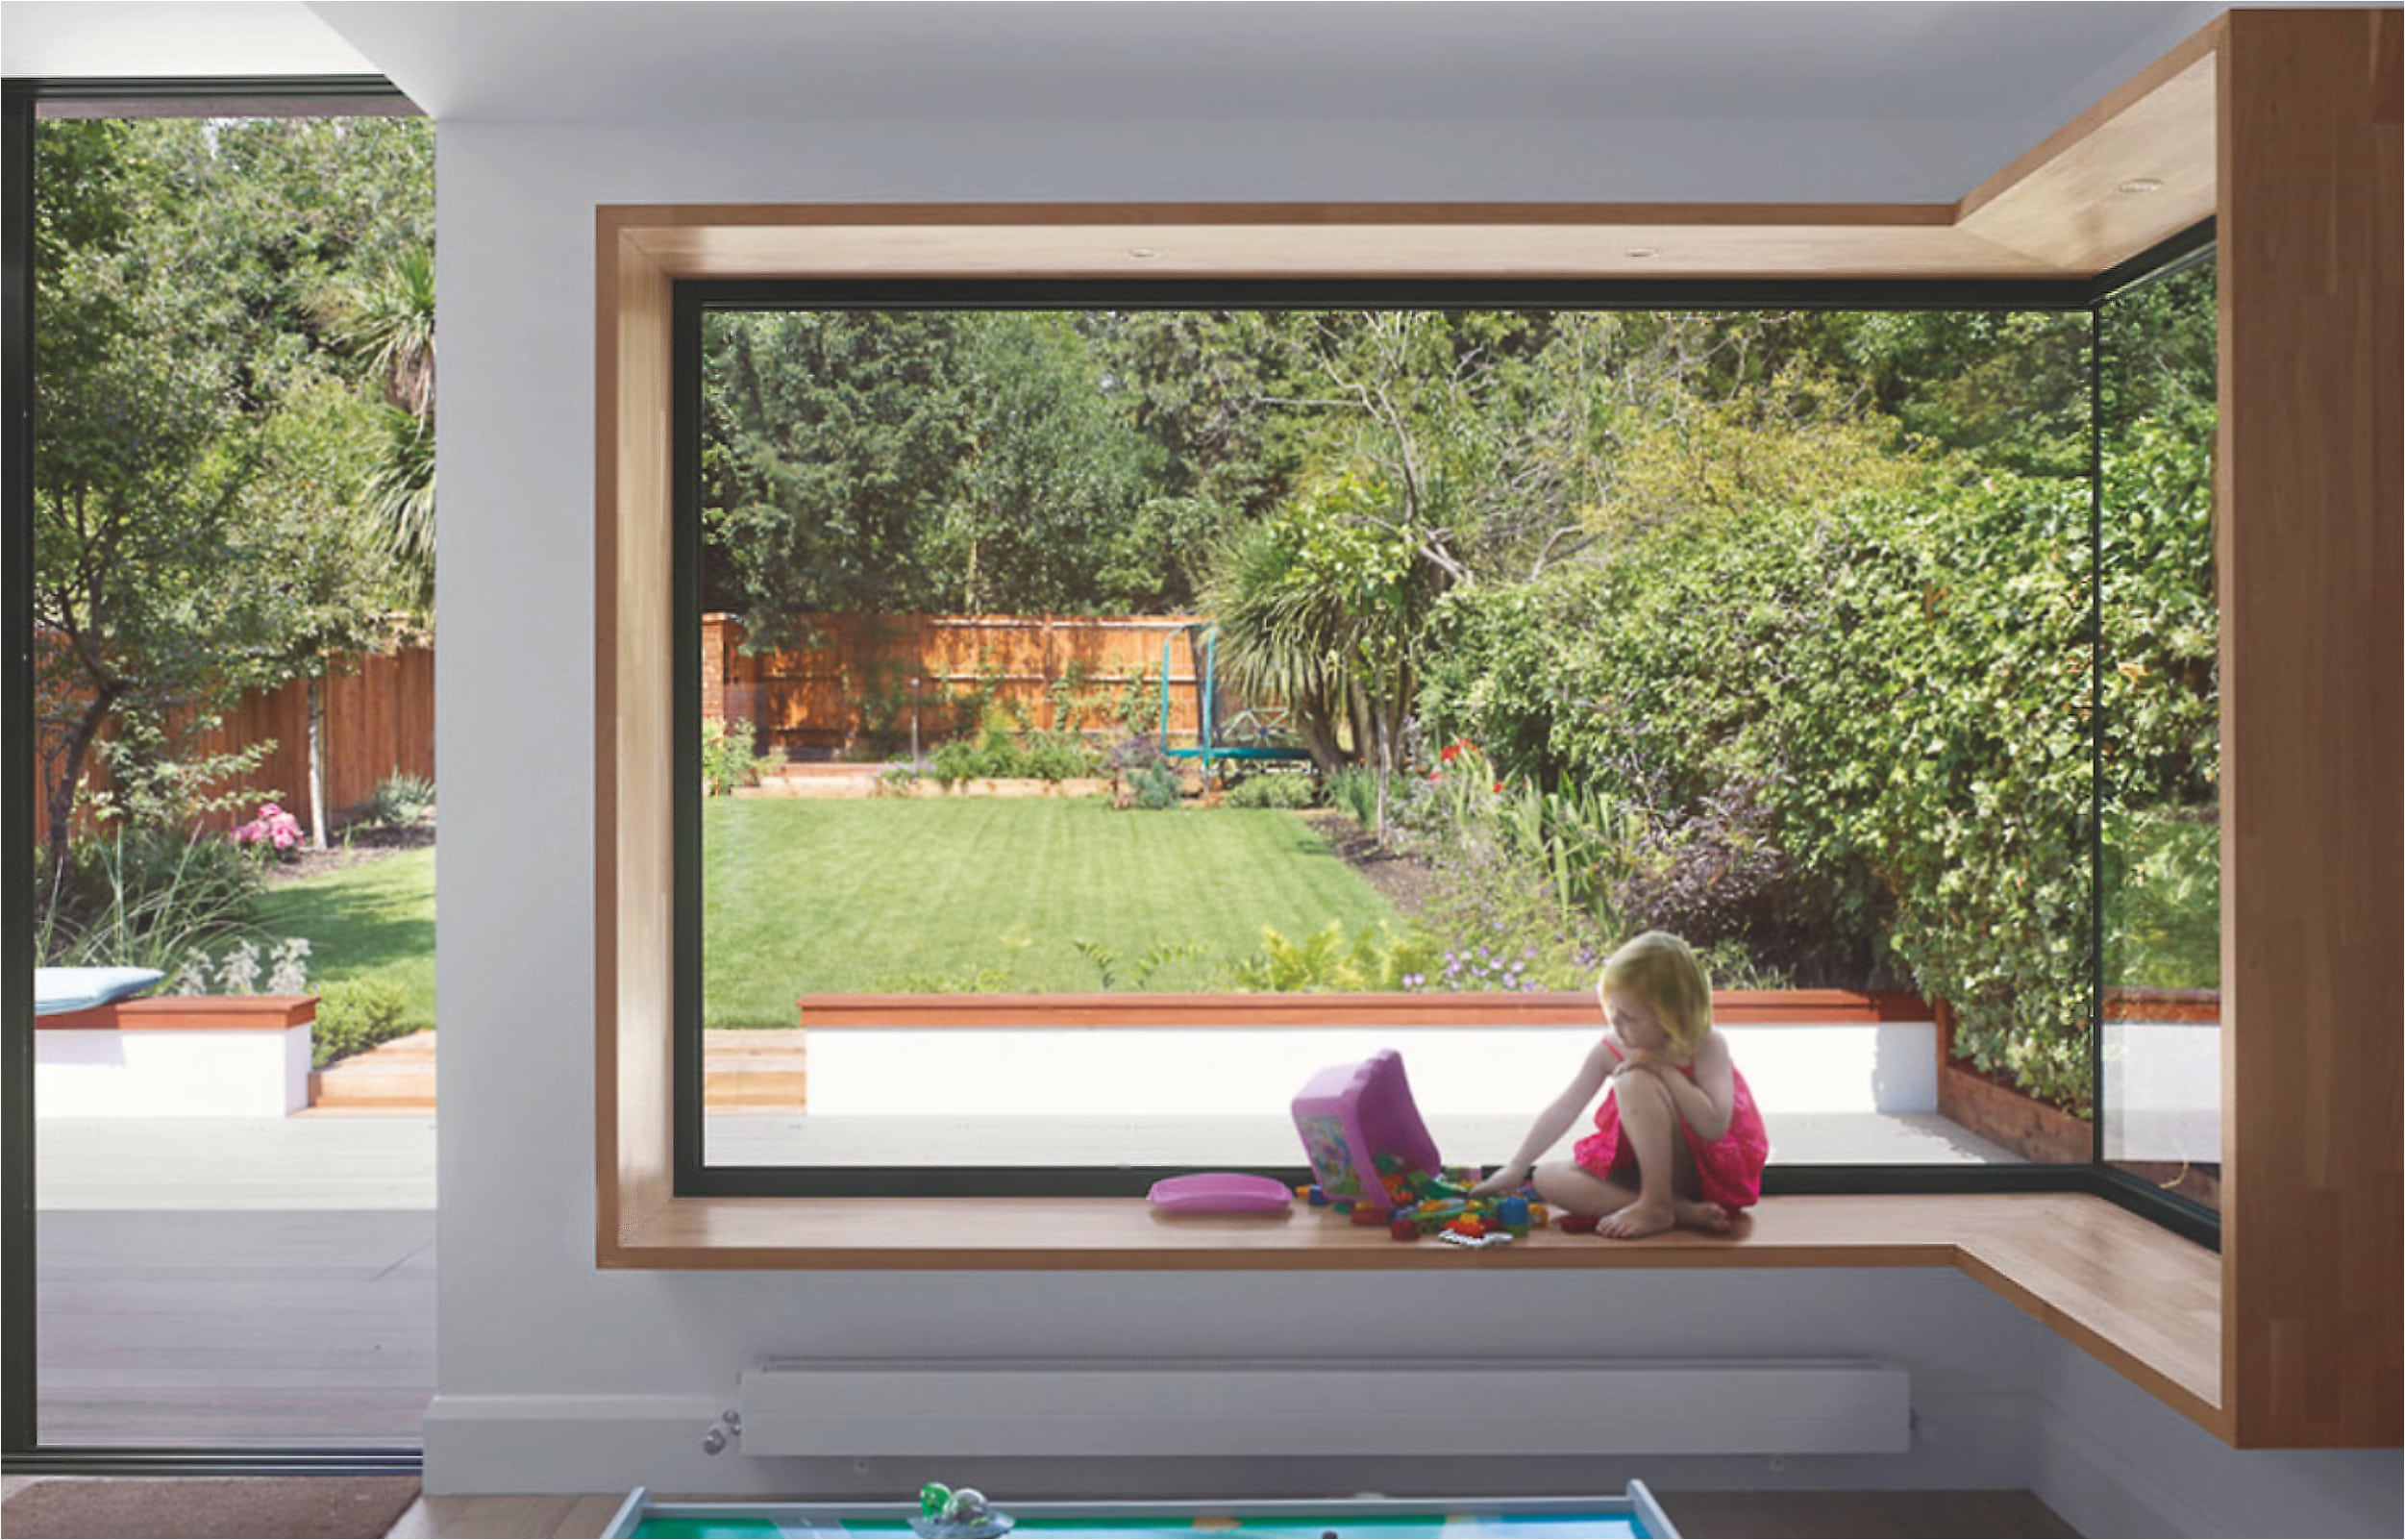 Glass to glass corner windows from IDSystems